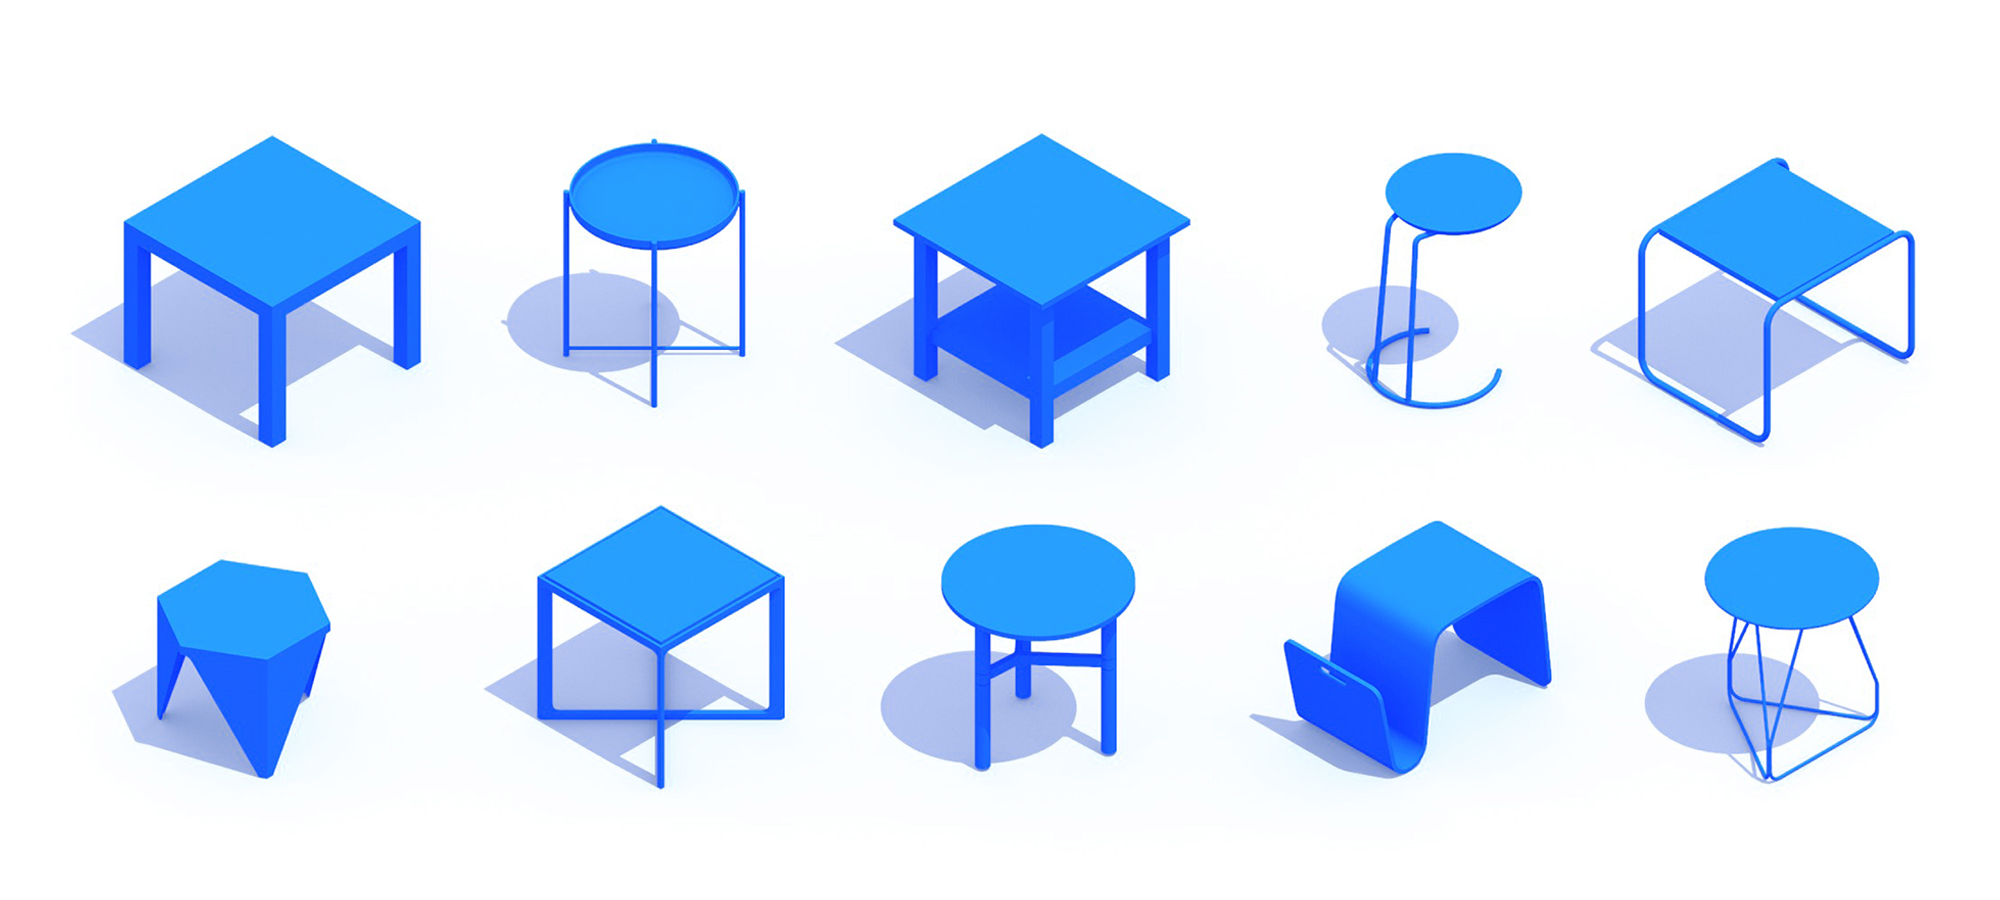 Assorted group of scaled 3D End Tables, or Side Tables, representing a range of sizes, styles, functions and designs